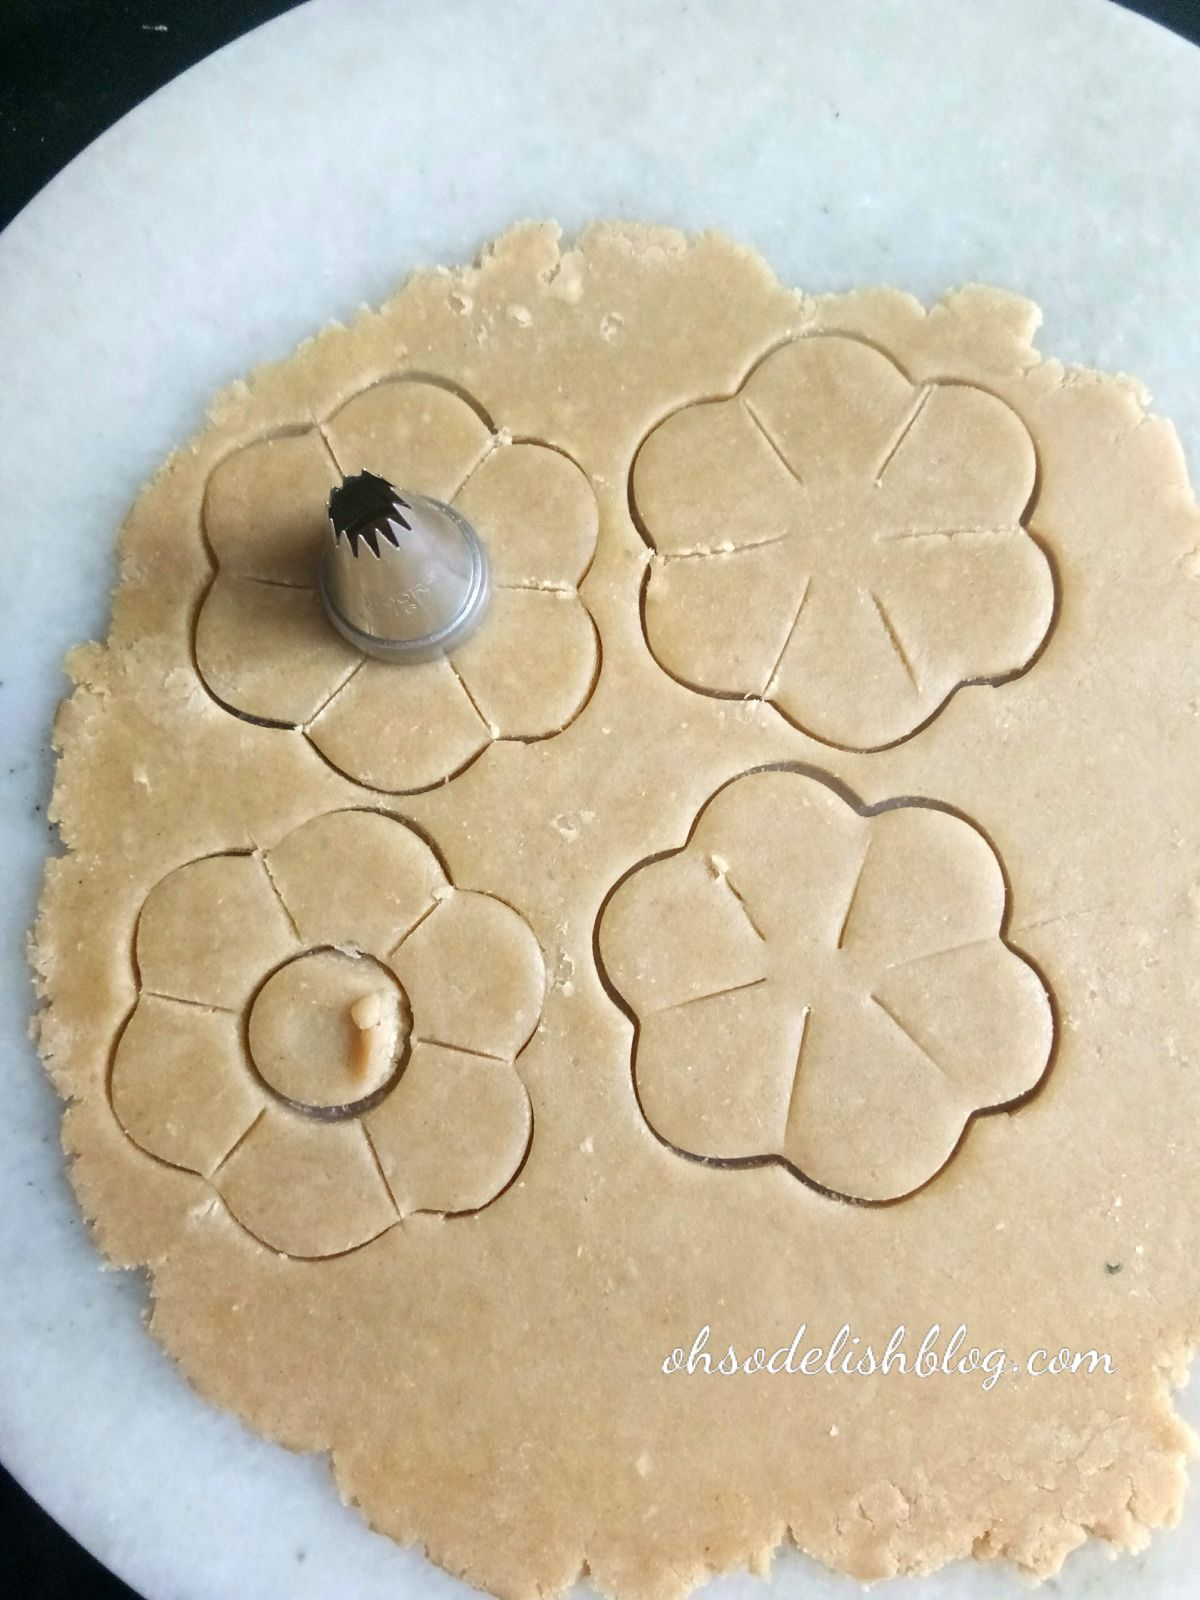 How to shape Jim Jam biscuits